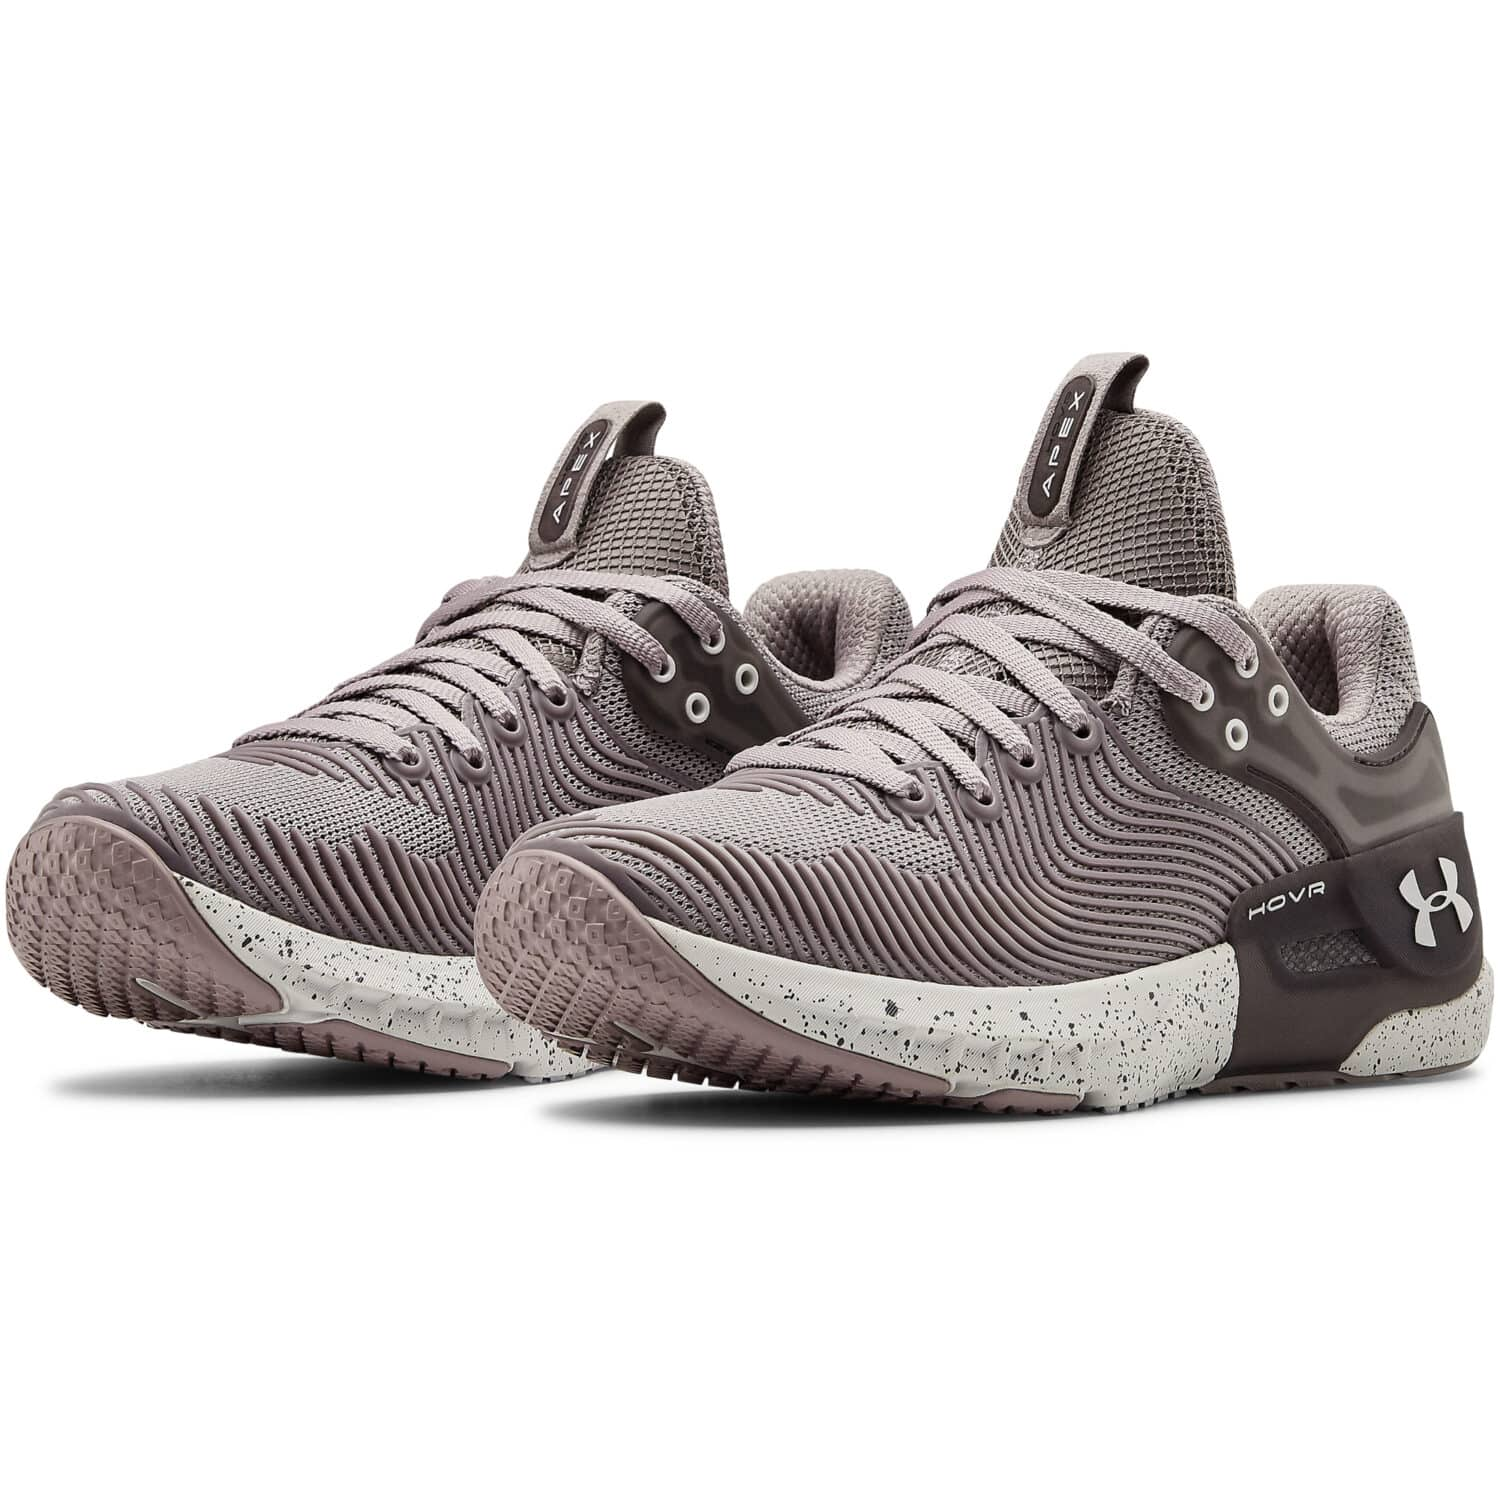 Under Armour UA W HOVR baskets